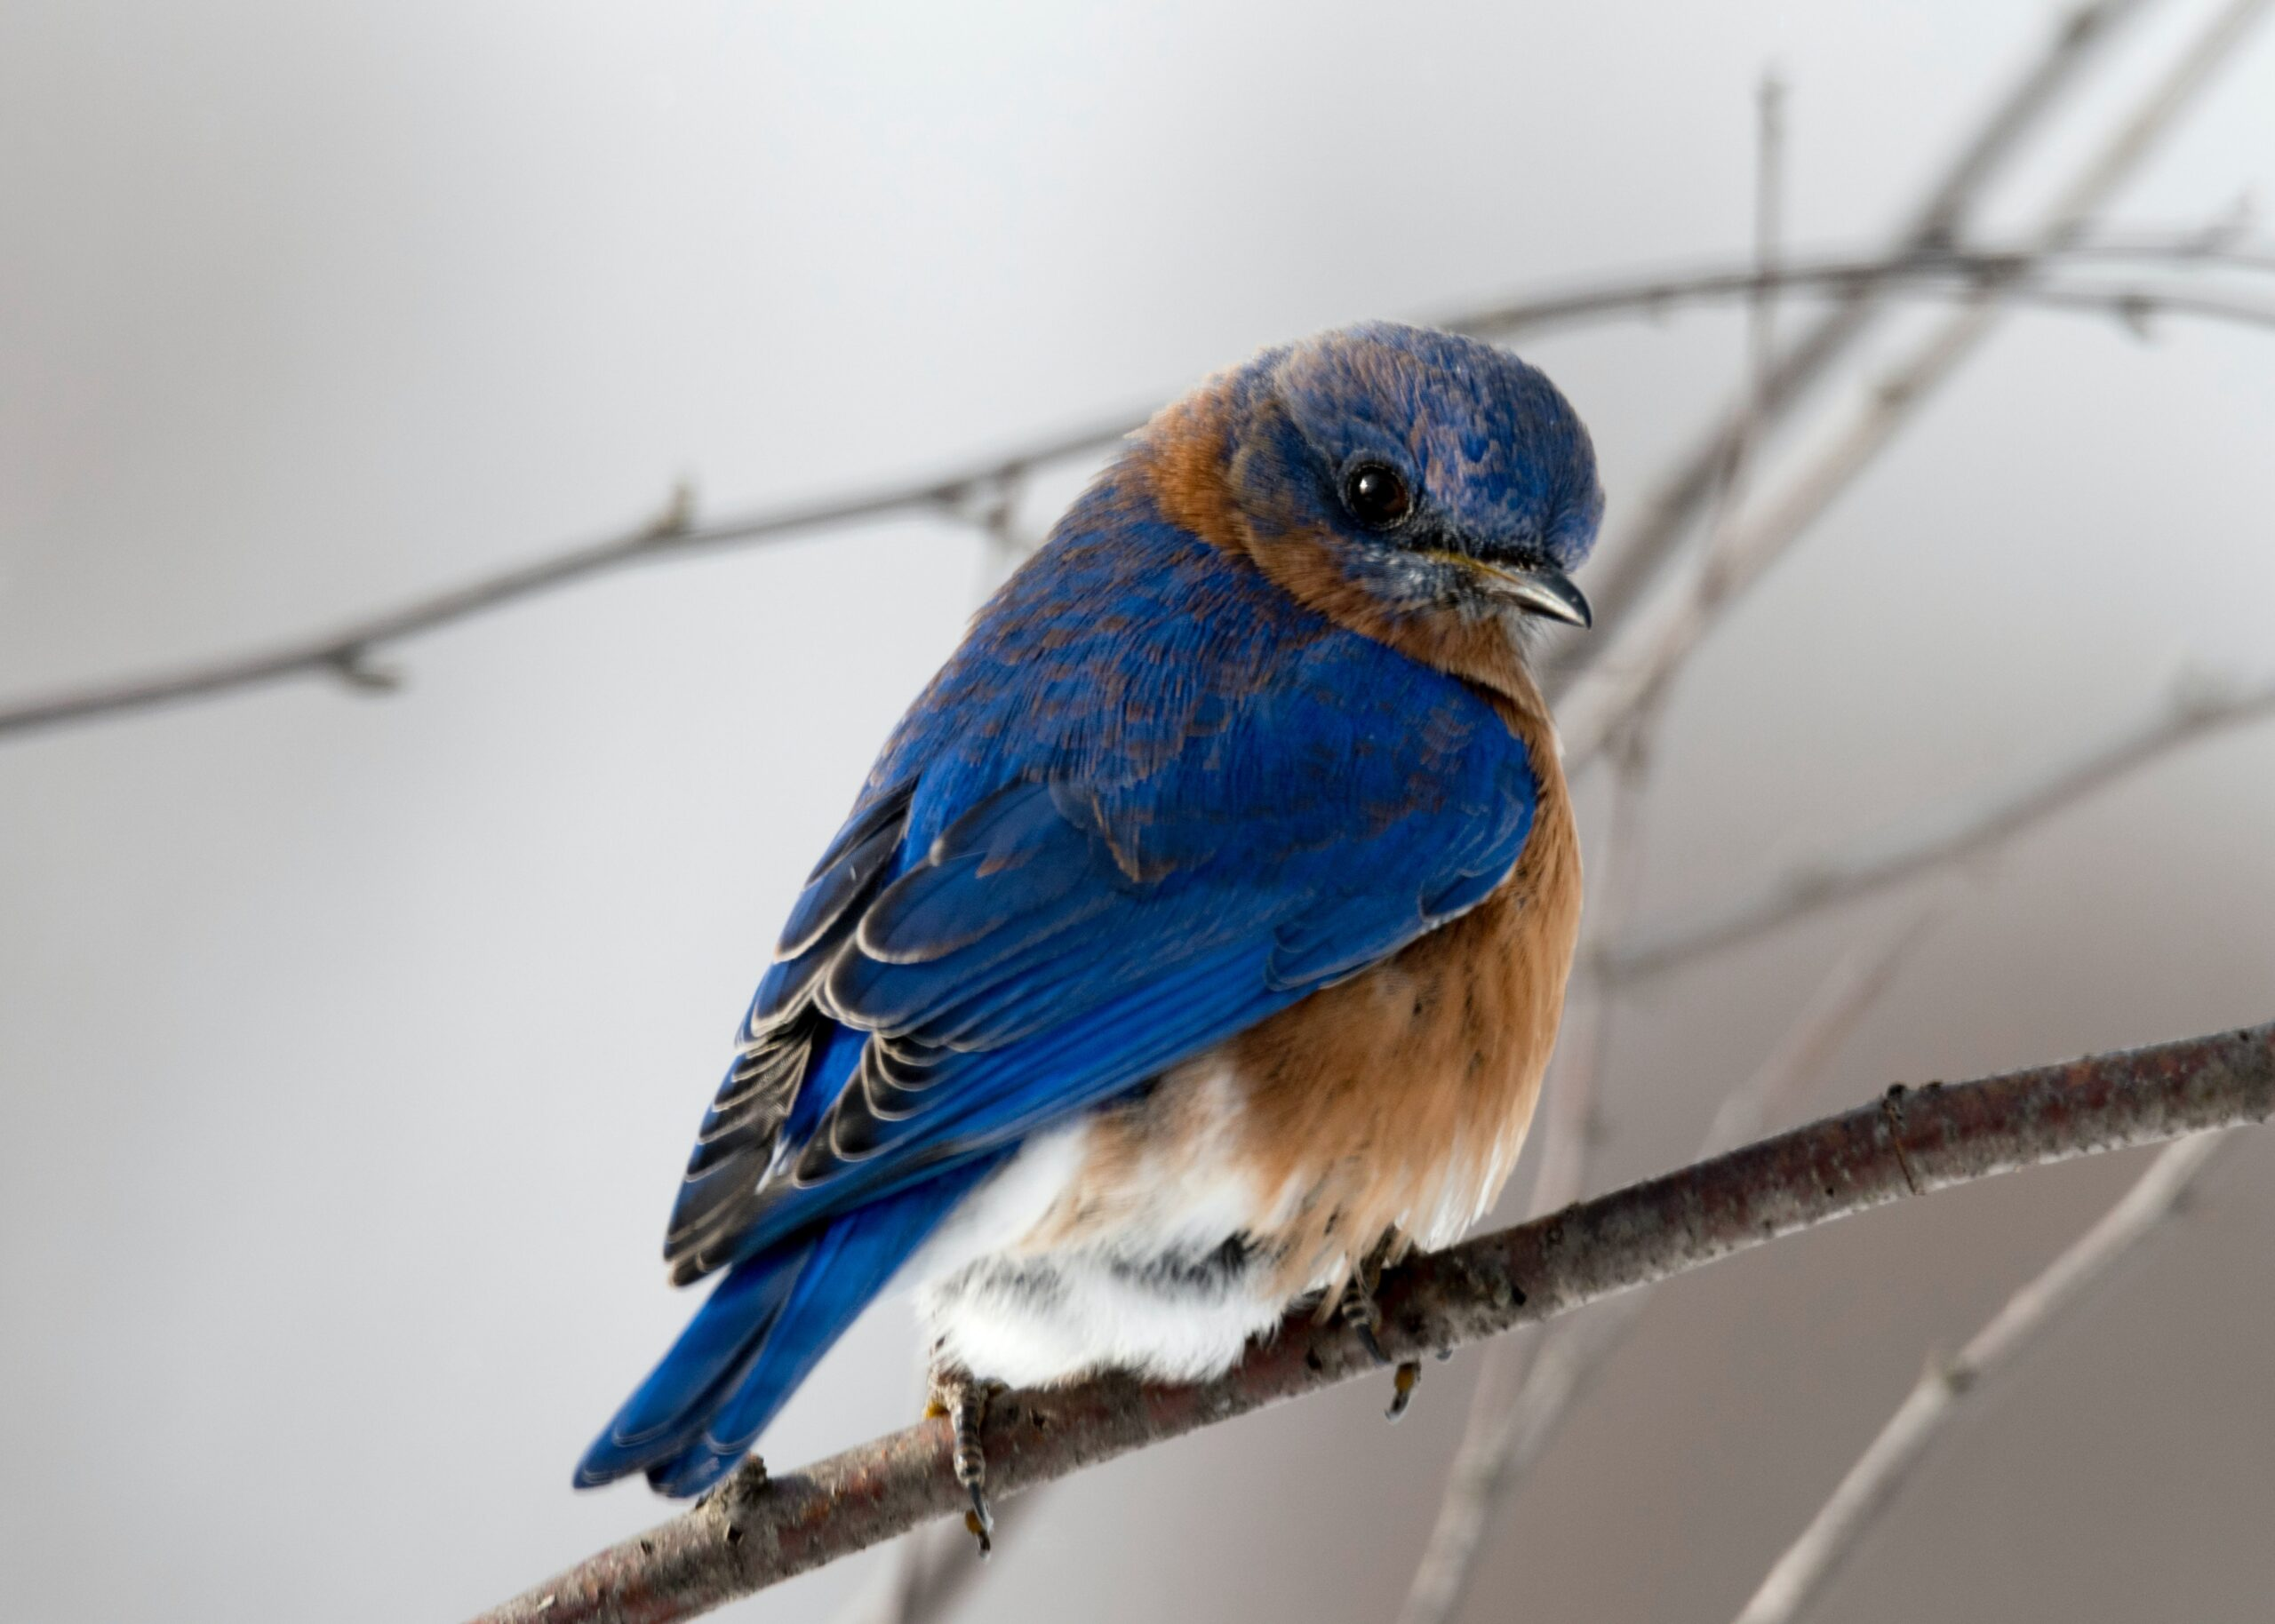 A blue and brown songbird on a branch